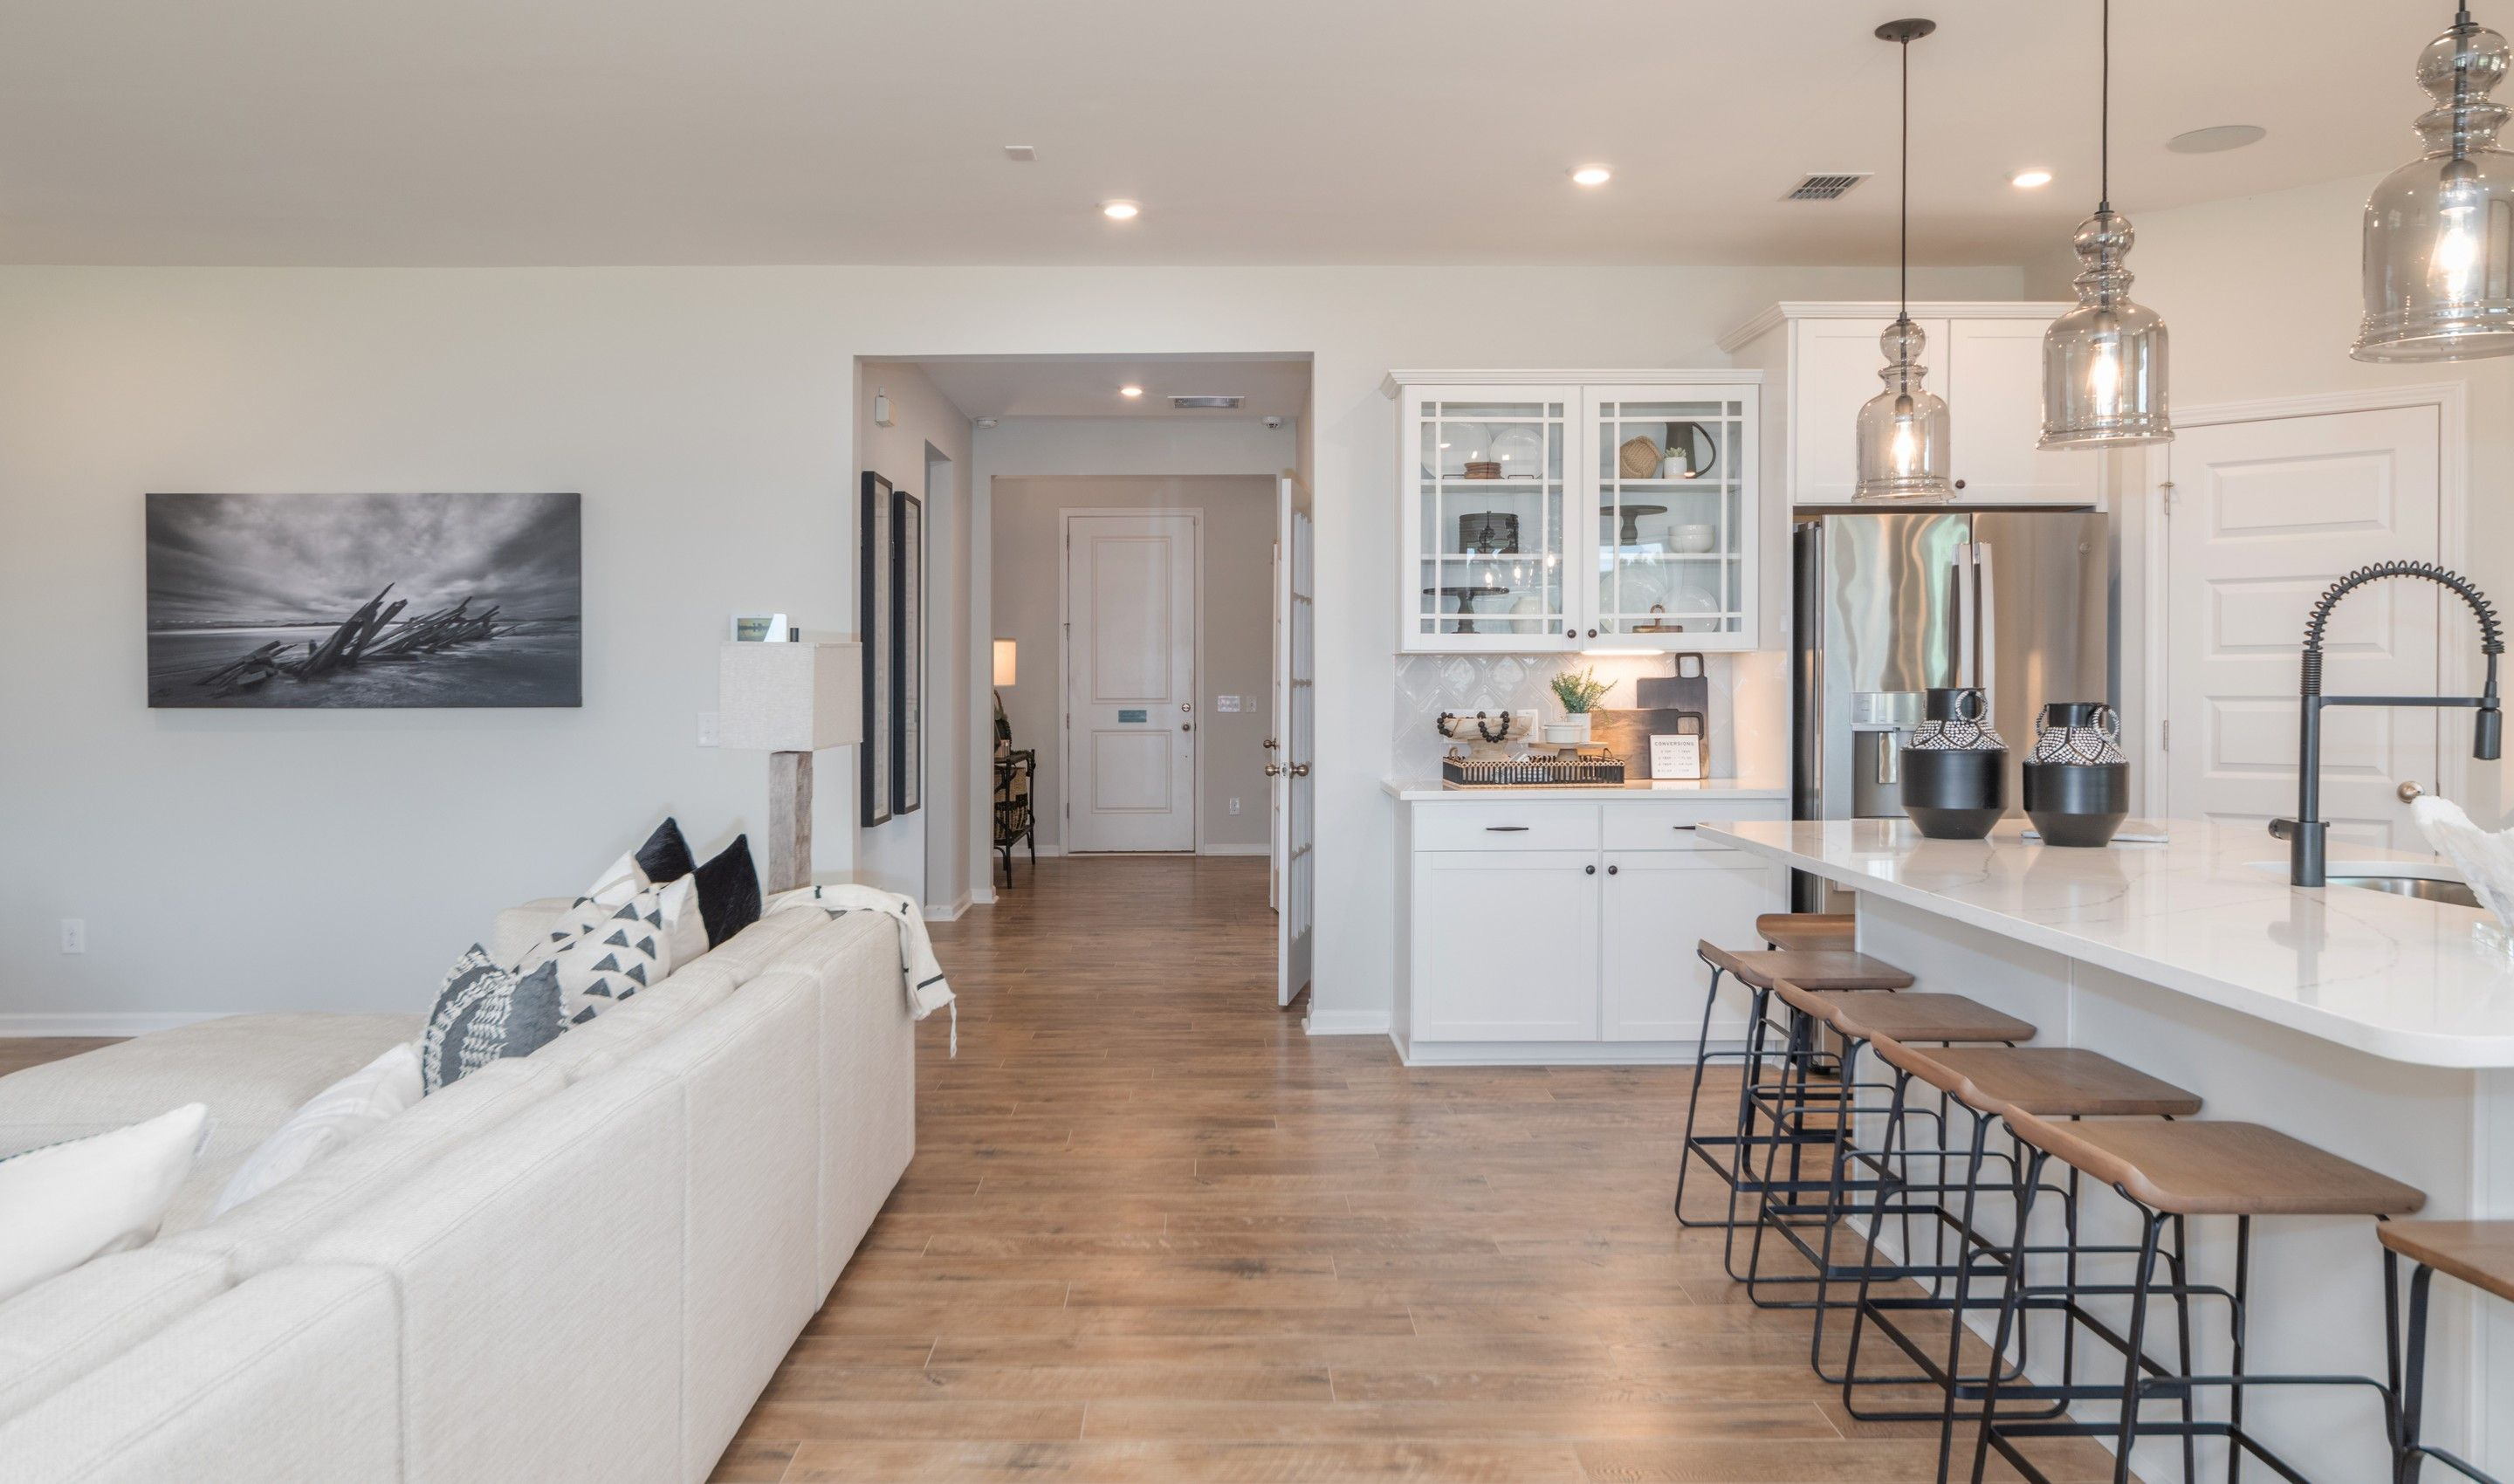 Kitchen featured in the Champlain By K. Hovnanian® Homes in Hilton Head, SC